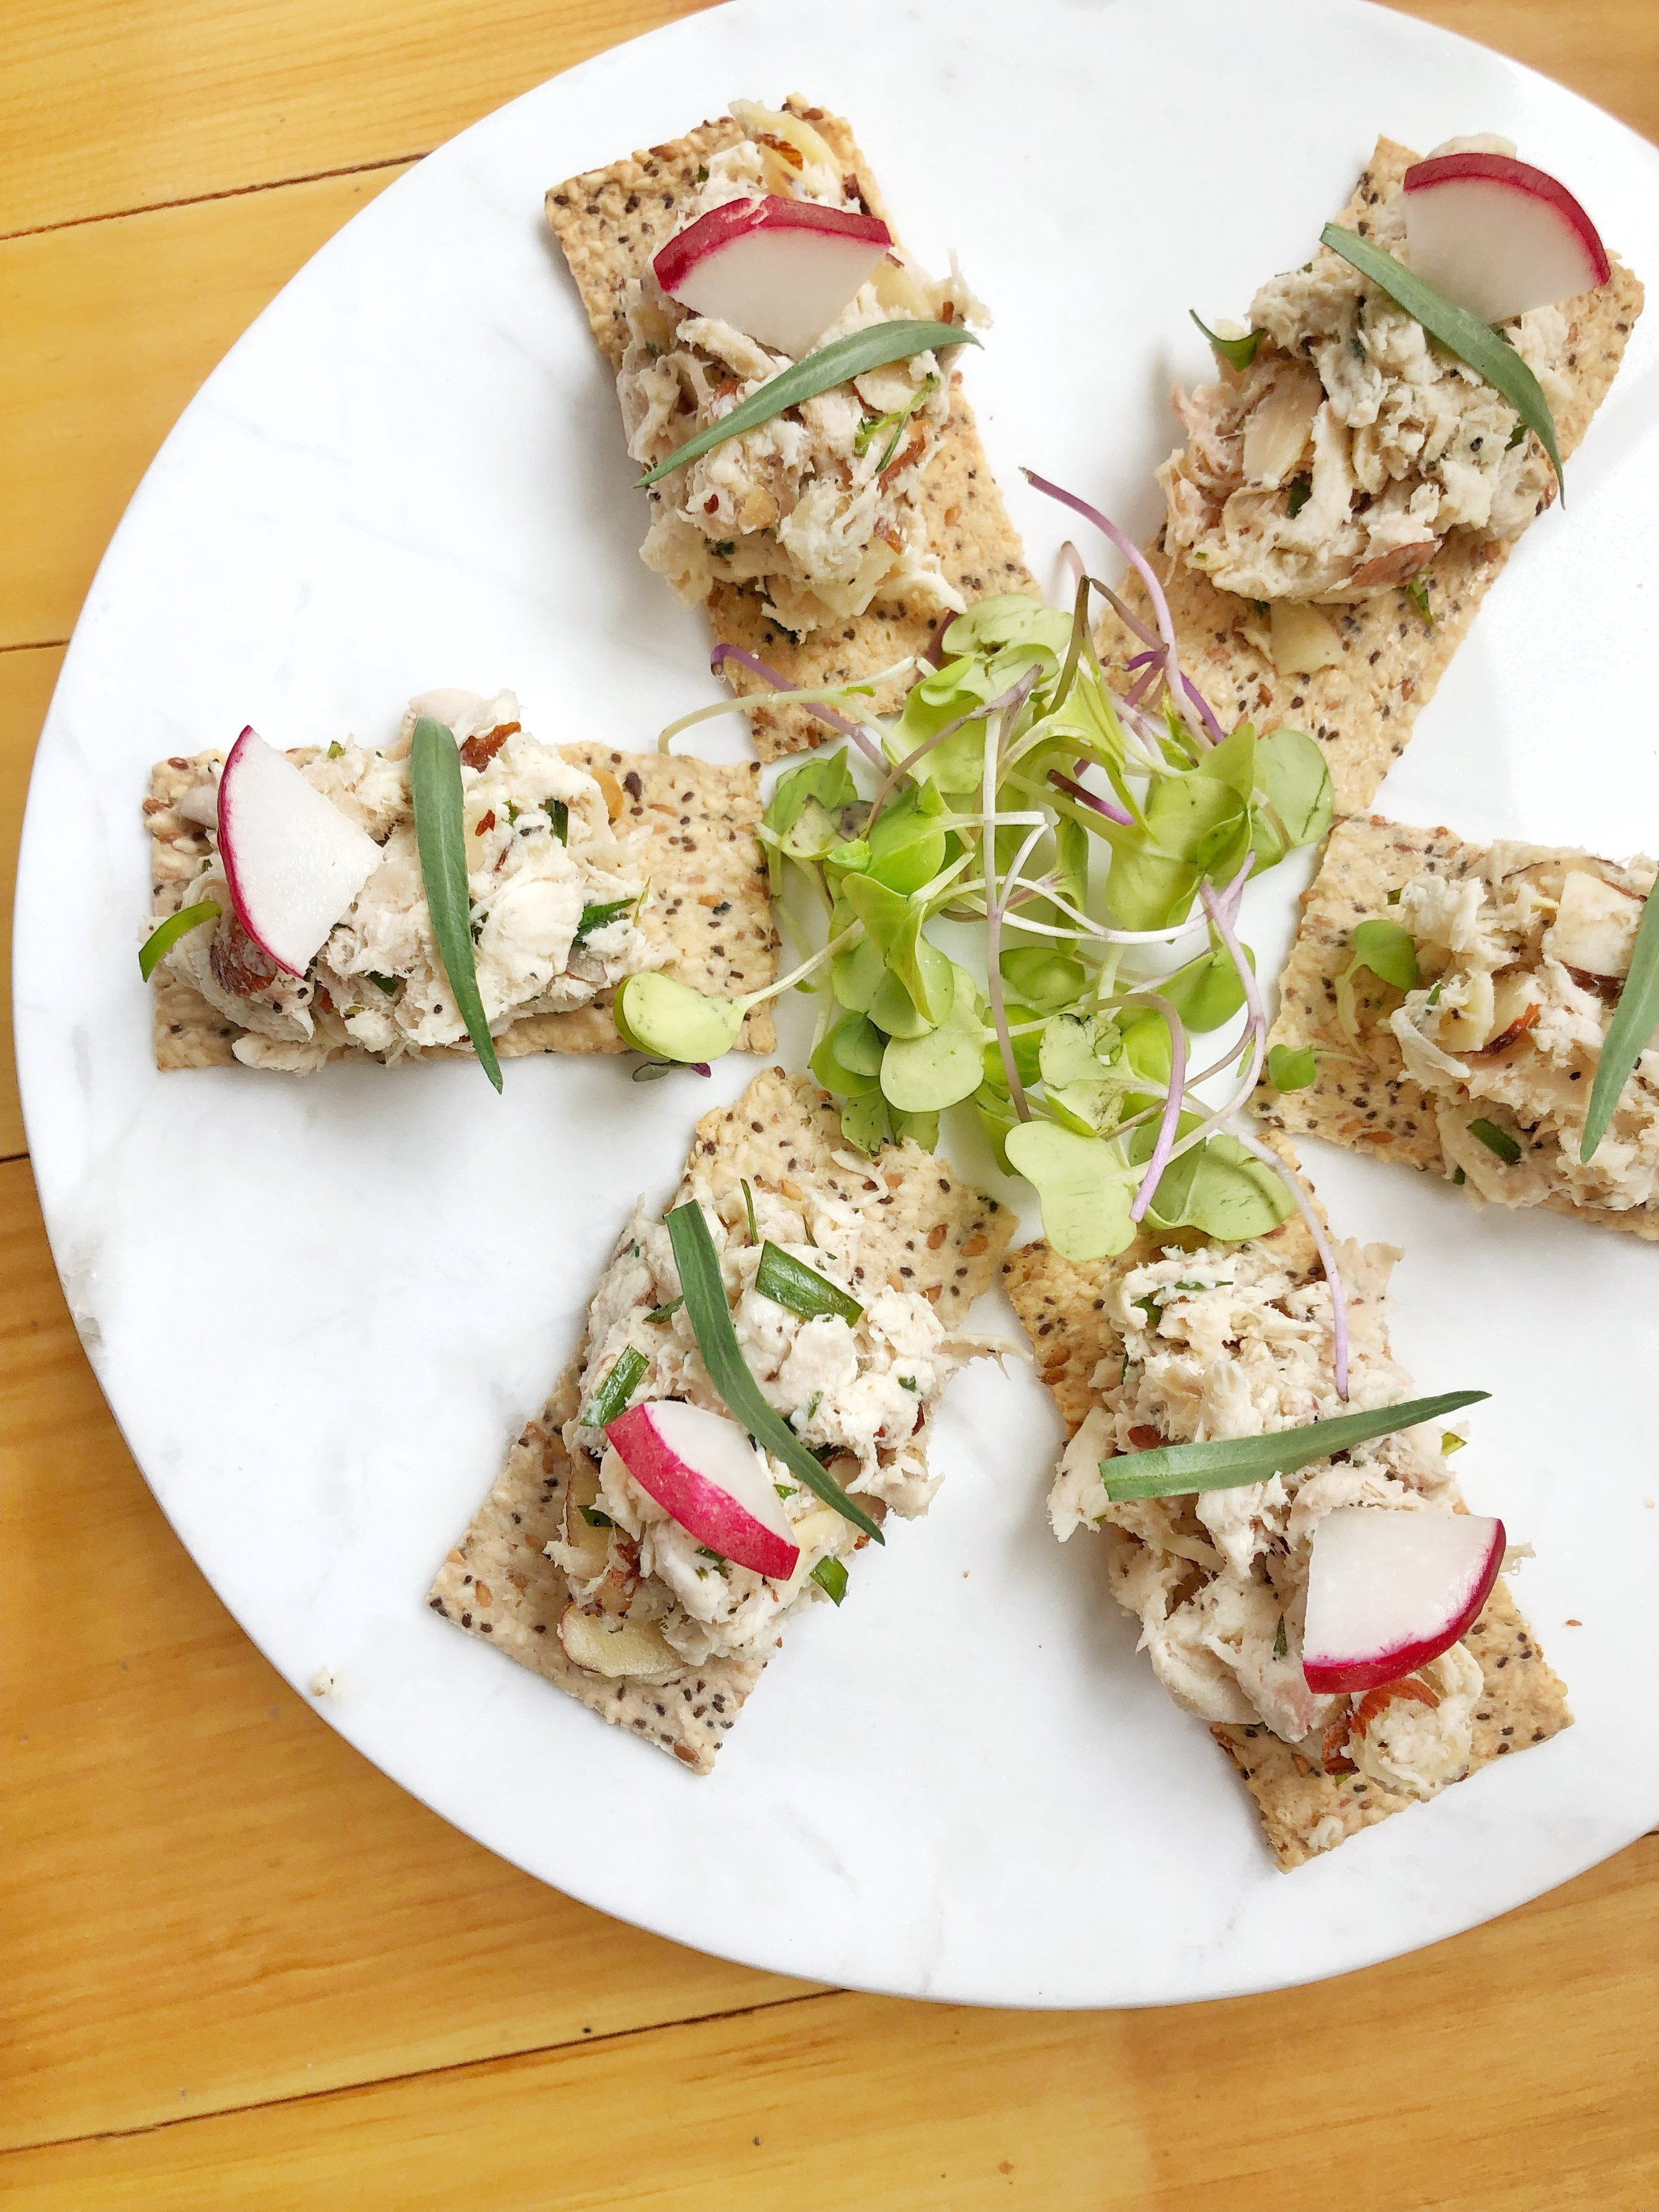 Tarragon & Almond Chicken Salad.jpg-clean-chicken-salad-whole-30-recipe-lunch-clean-eating